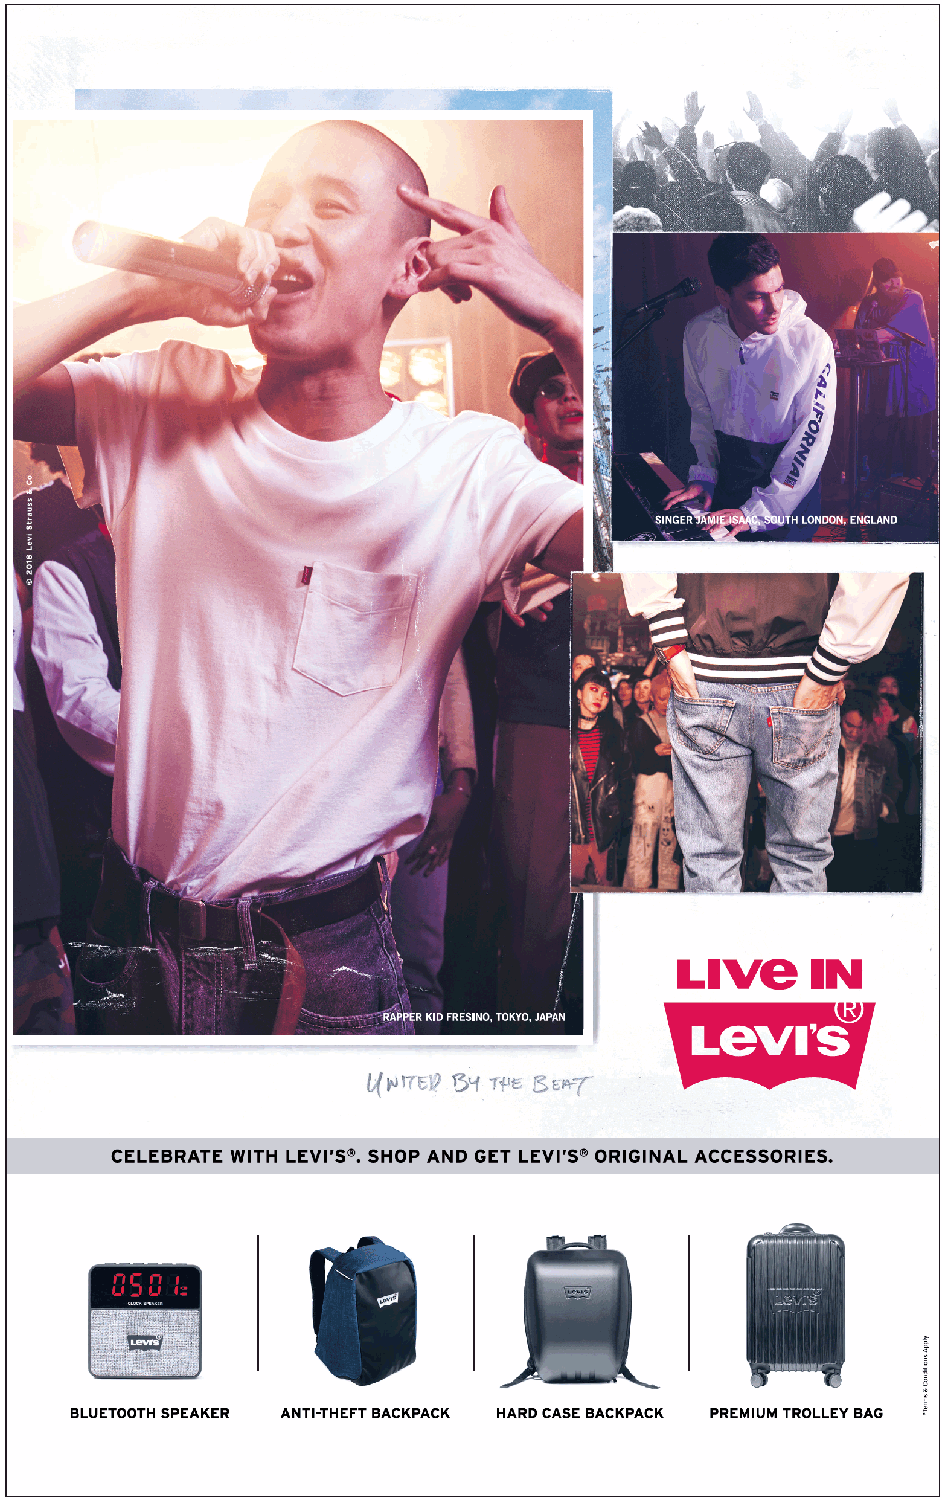 Live In Levis Celebrate With Levis Ad - Advert Gallery